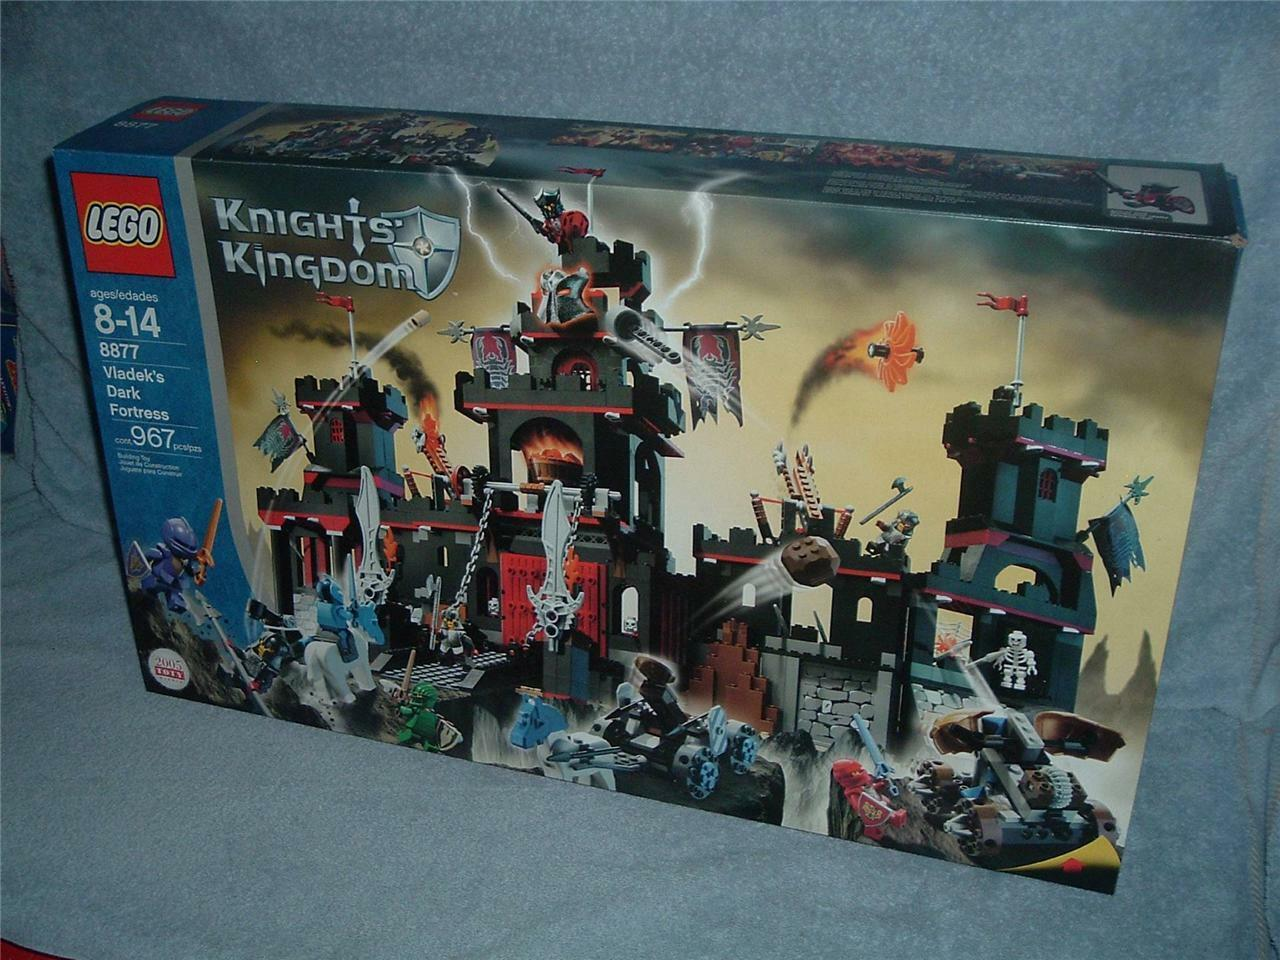 VLADEKS DARK FORTRESS Knights Kingdom 8877 LEGO 2005 Nuovo Sealed Rascus Santis